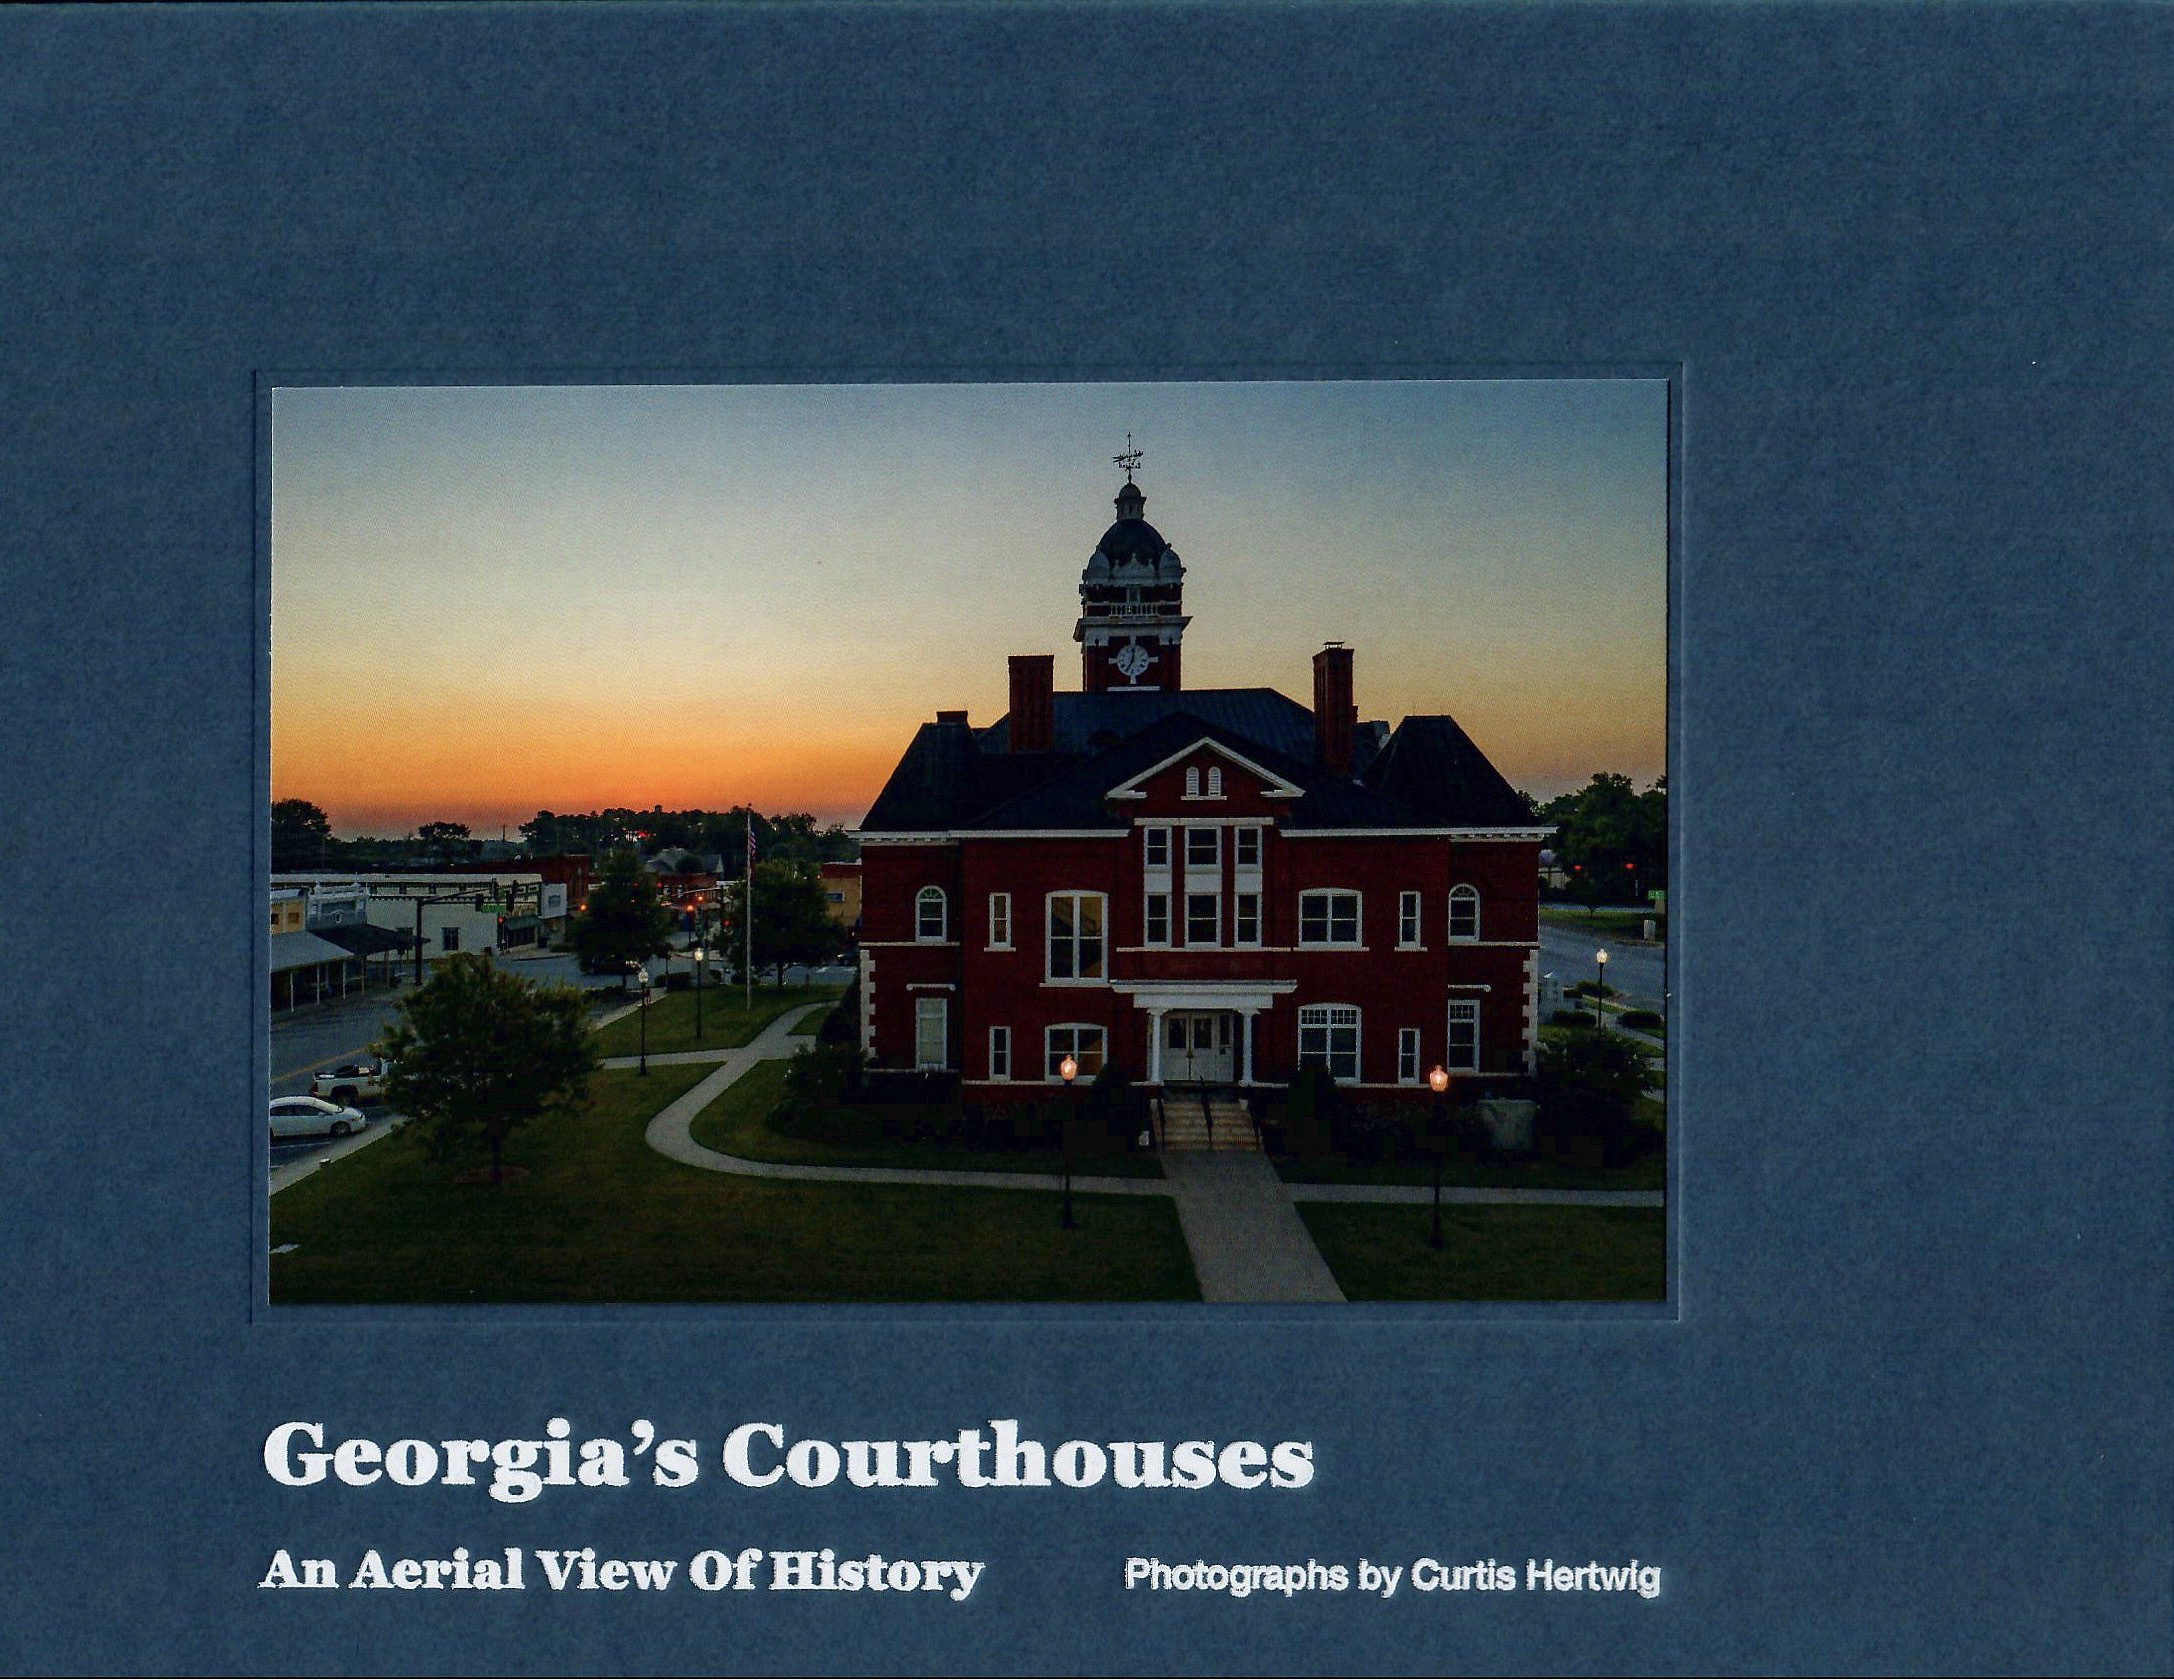 Georgia's Courthouses - An Aerial View of History